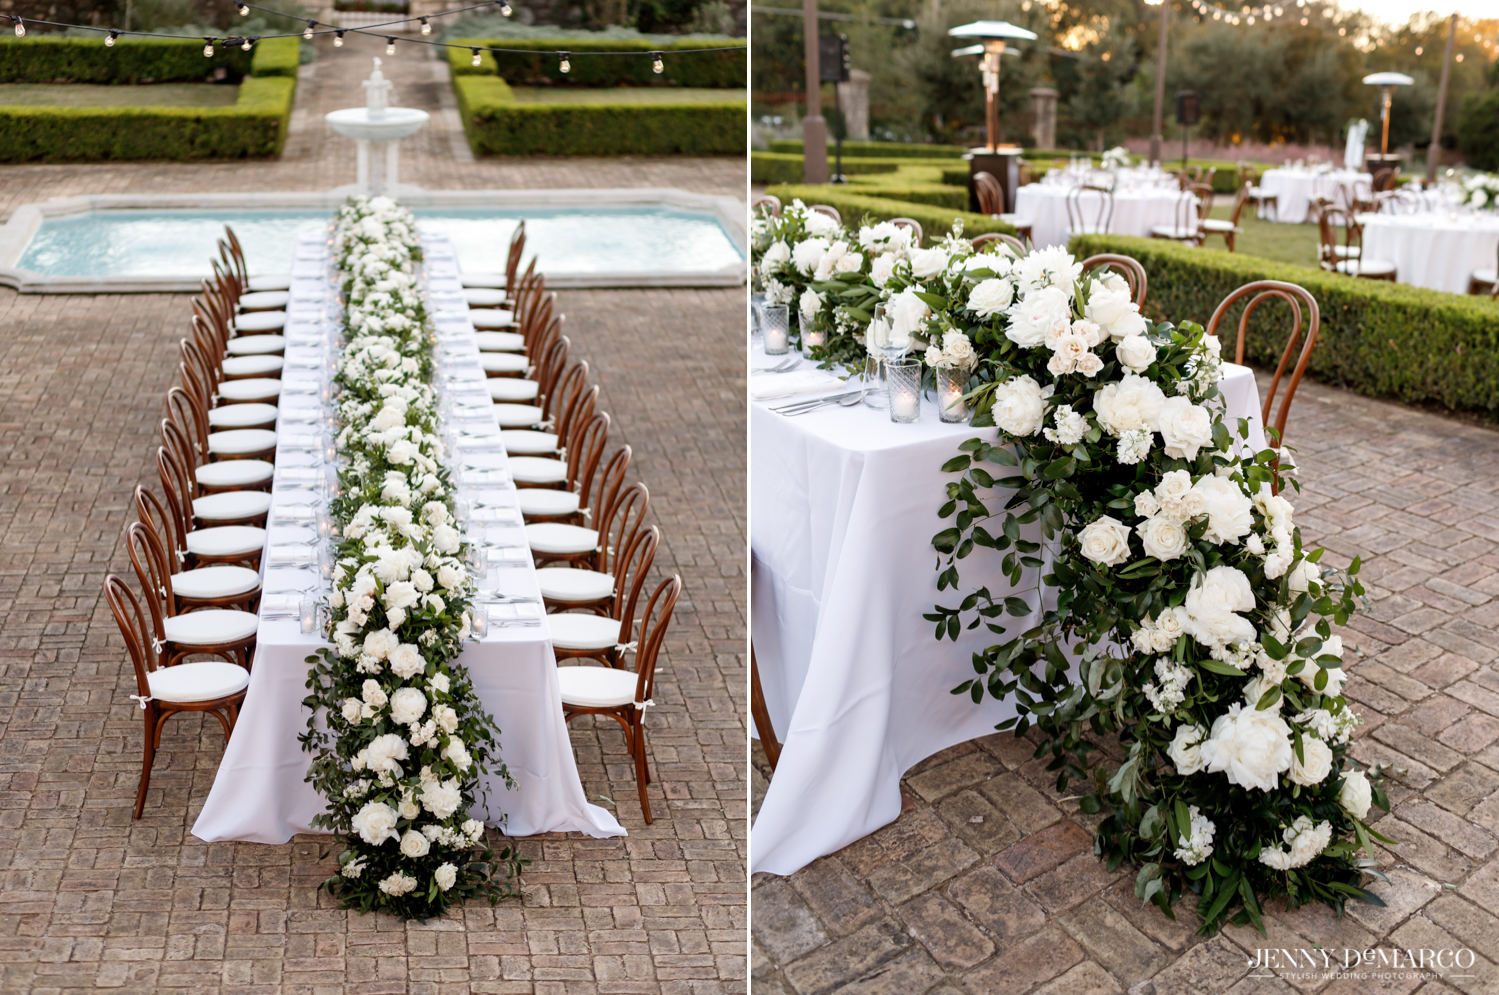 White florals mixed with greenery to create the table centerpiece